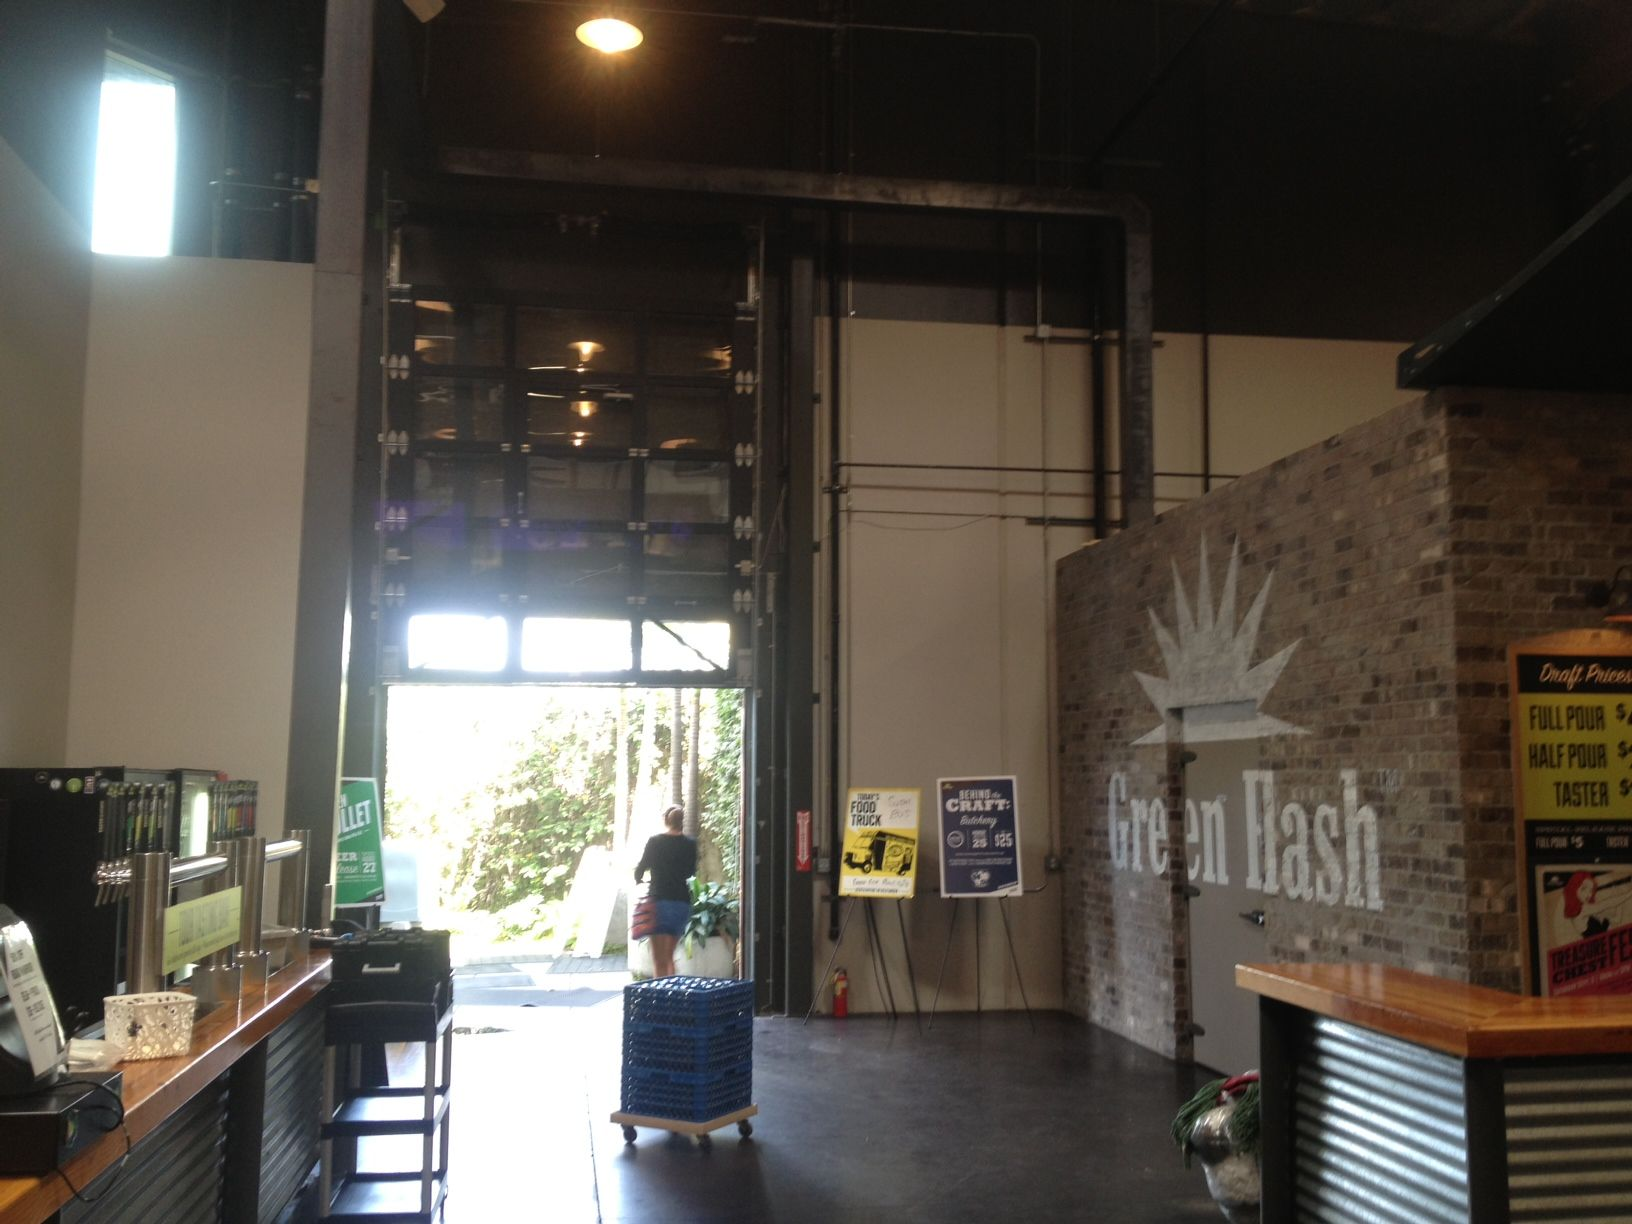 Glass garage door interior - Green Flash Brewery In California With Welded Arm R Lite Glass Garage Door And